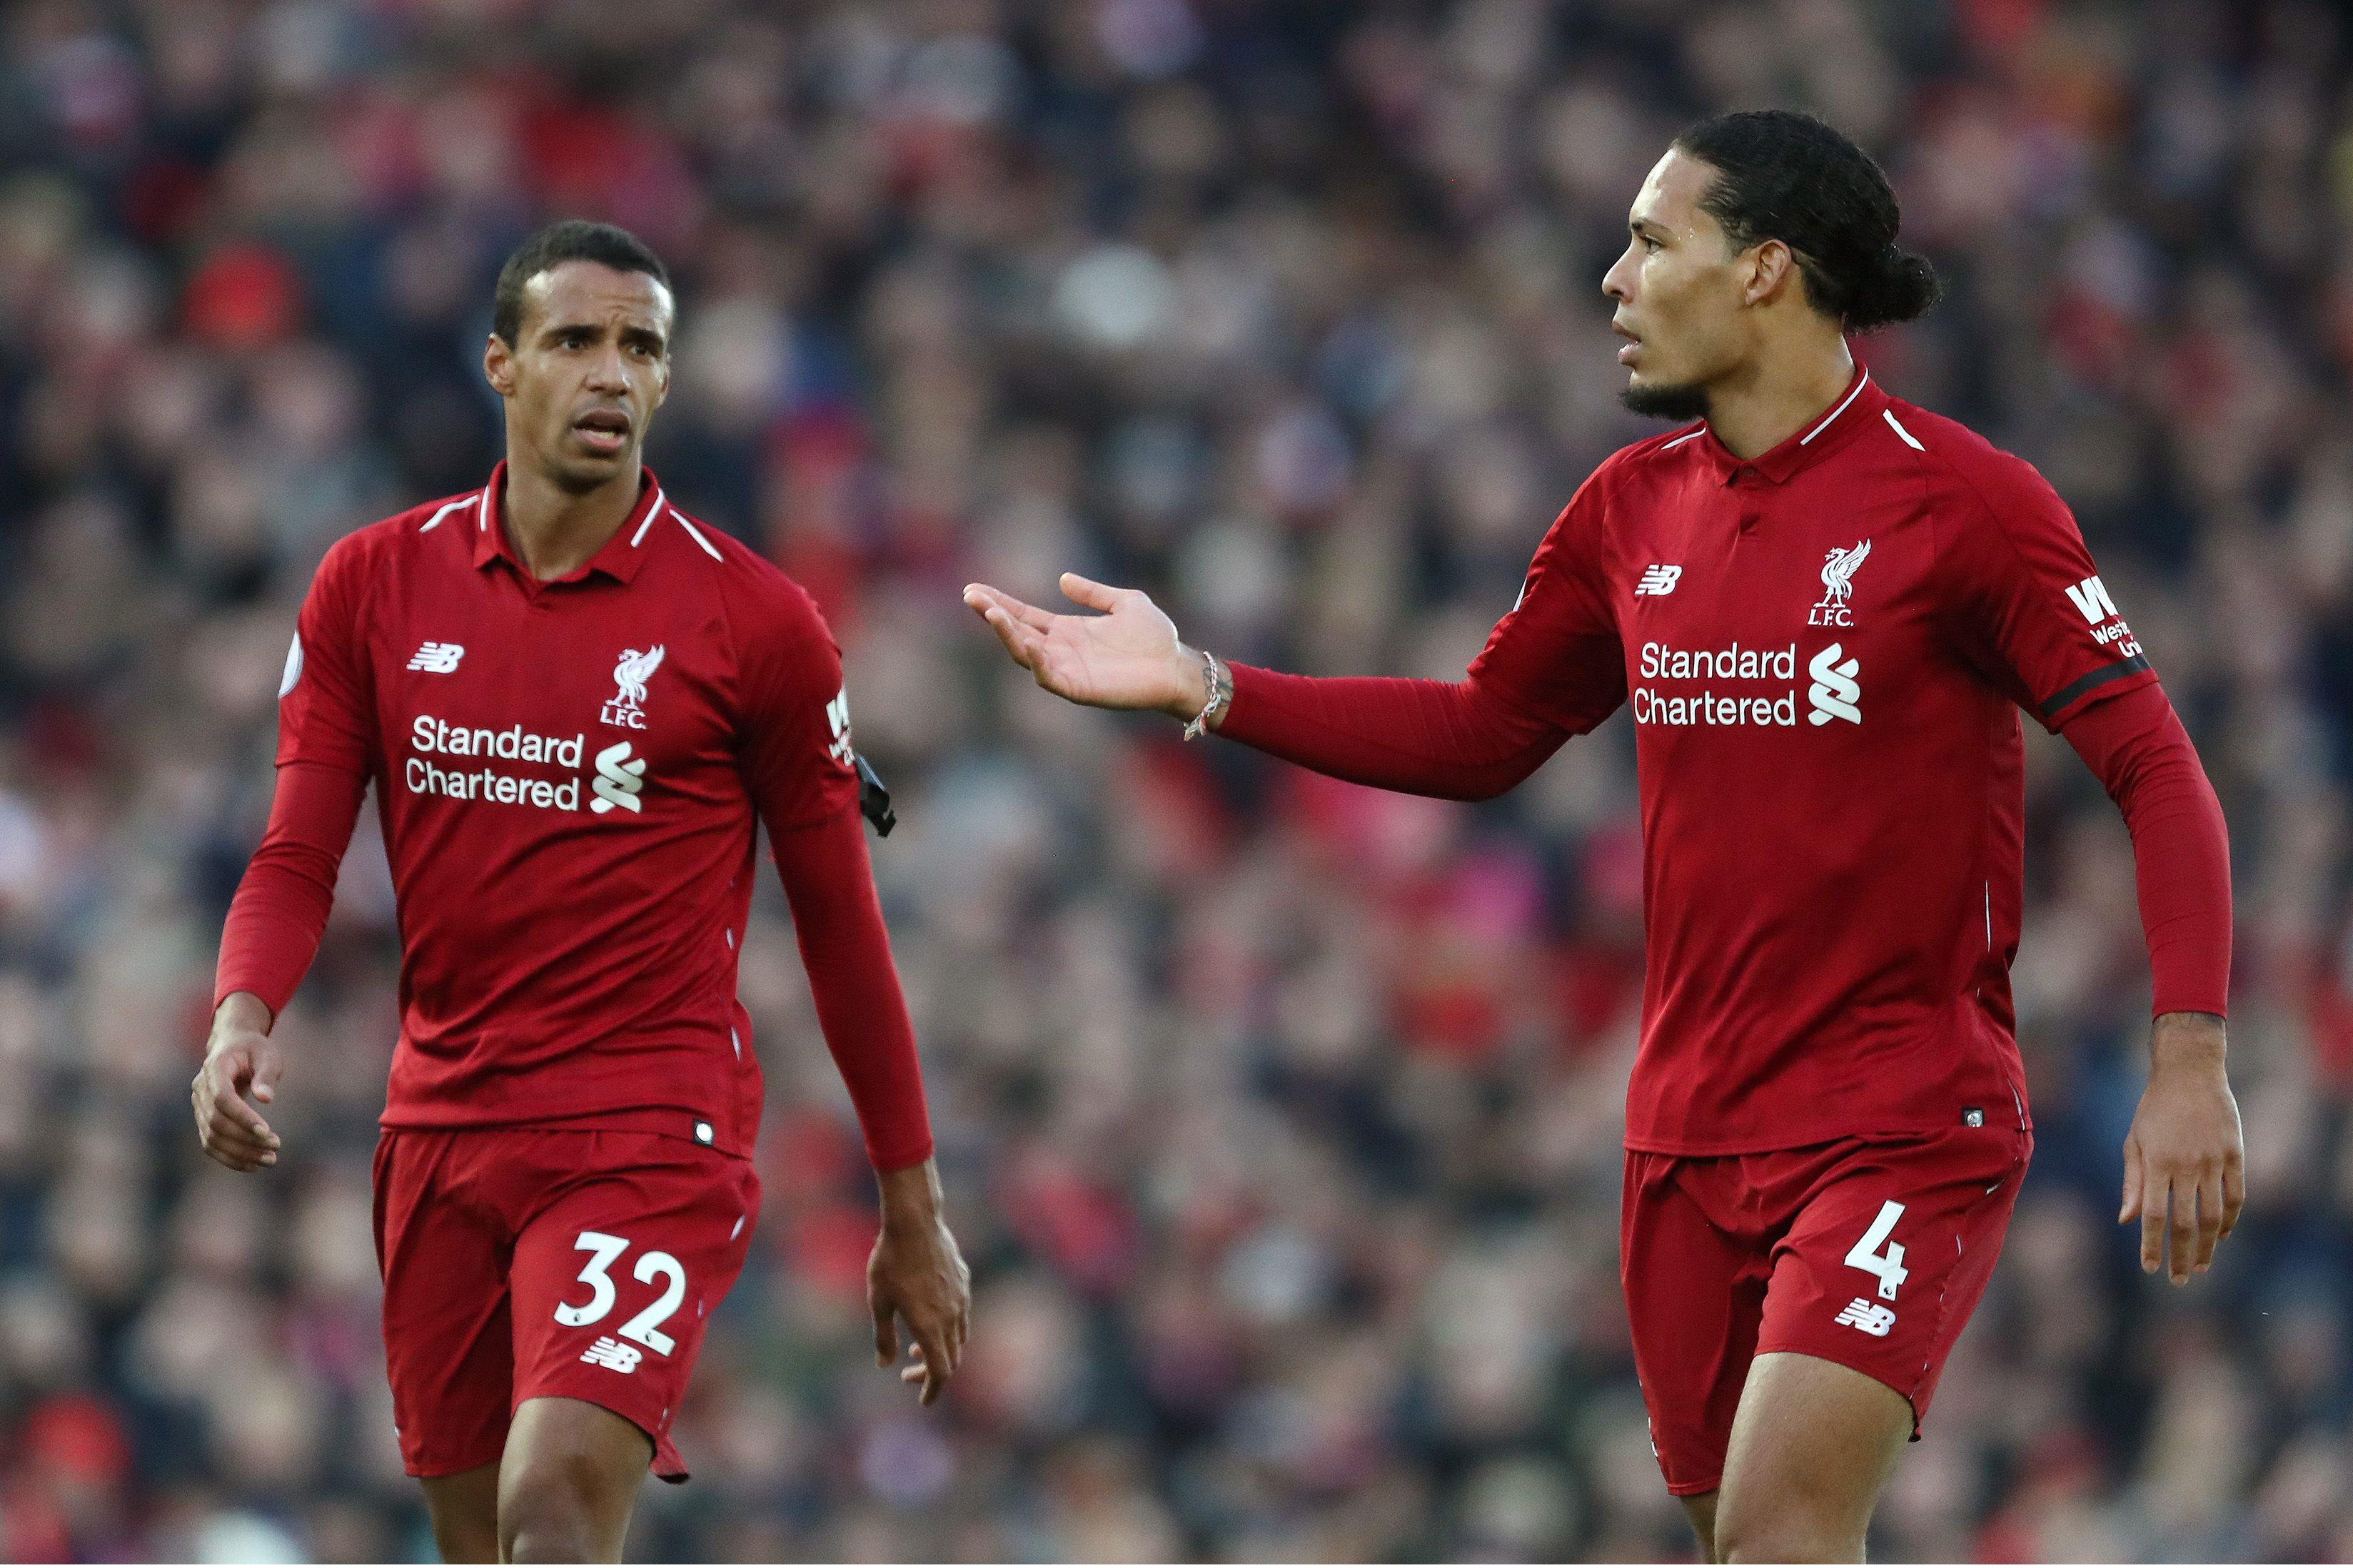 Some of the decade's best defensive partnerships in the